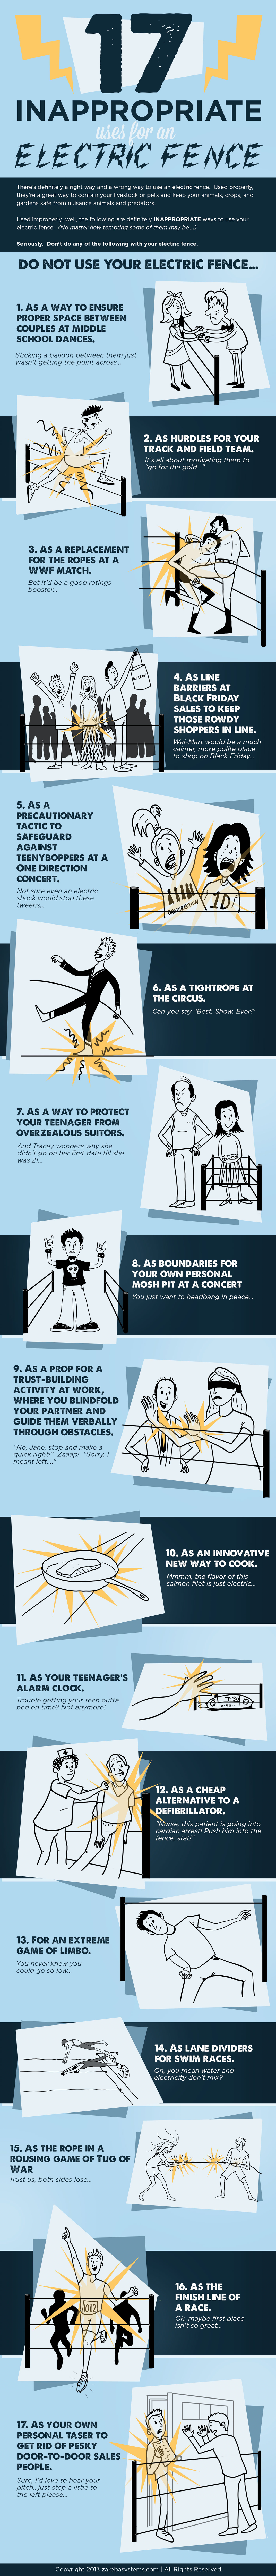 17 Inappropriate Uses of an Electric Fence